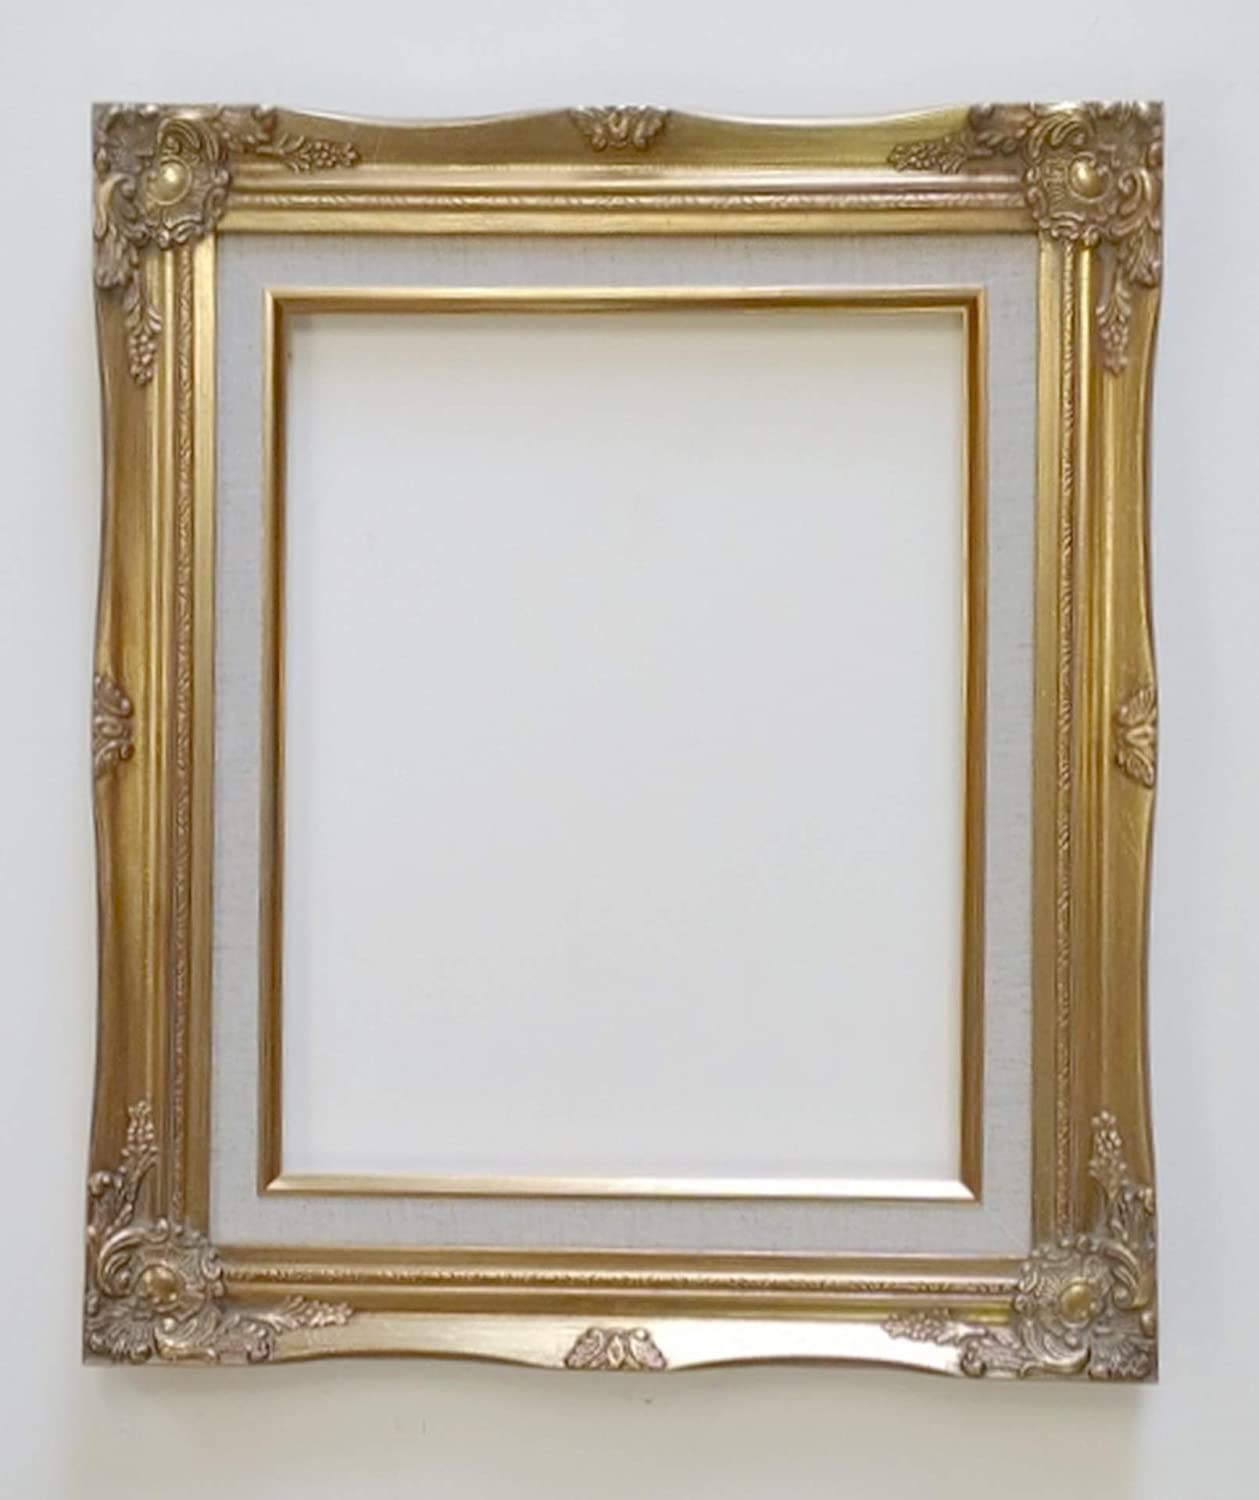 0d62514f5fd0 Amazon.com - TP Picture Frame Only-11x14 Old Gold Ornate